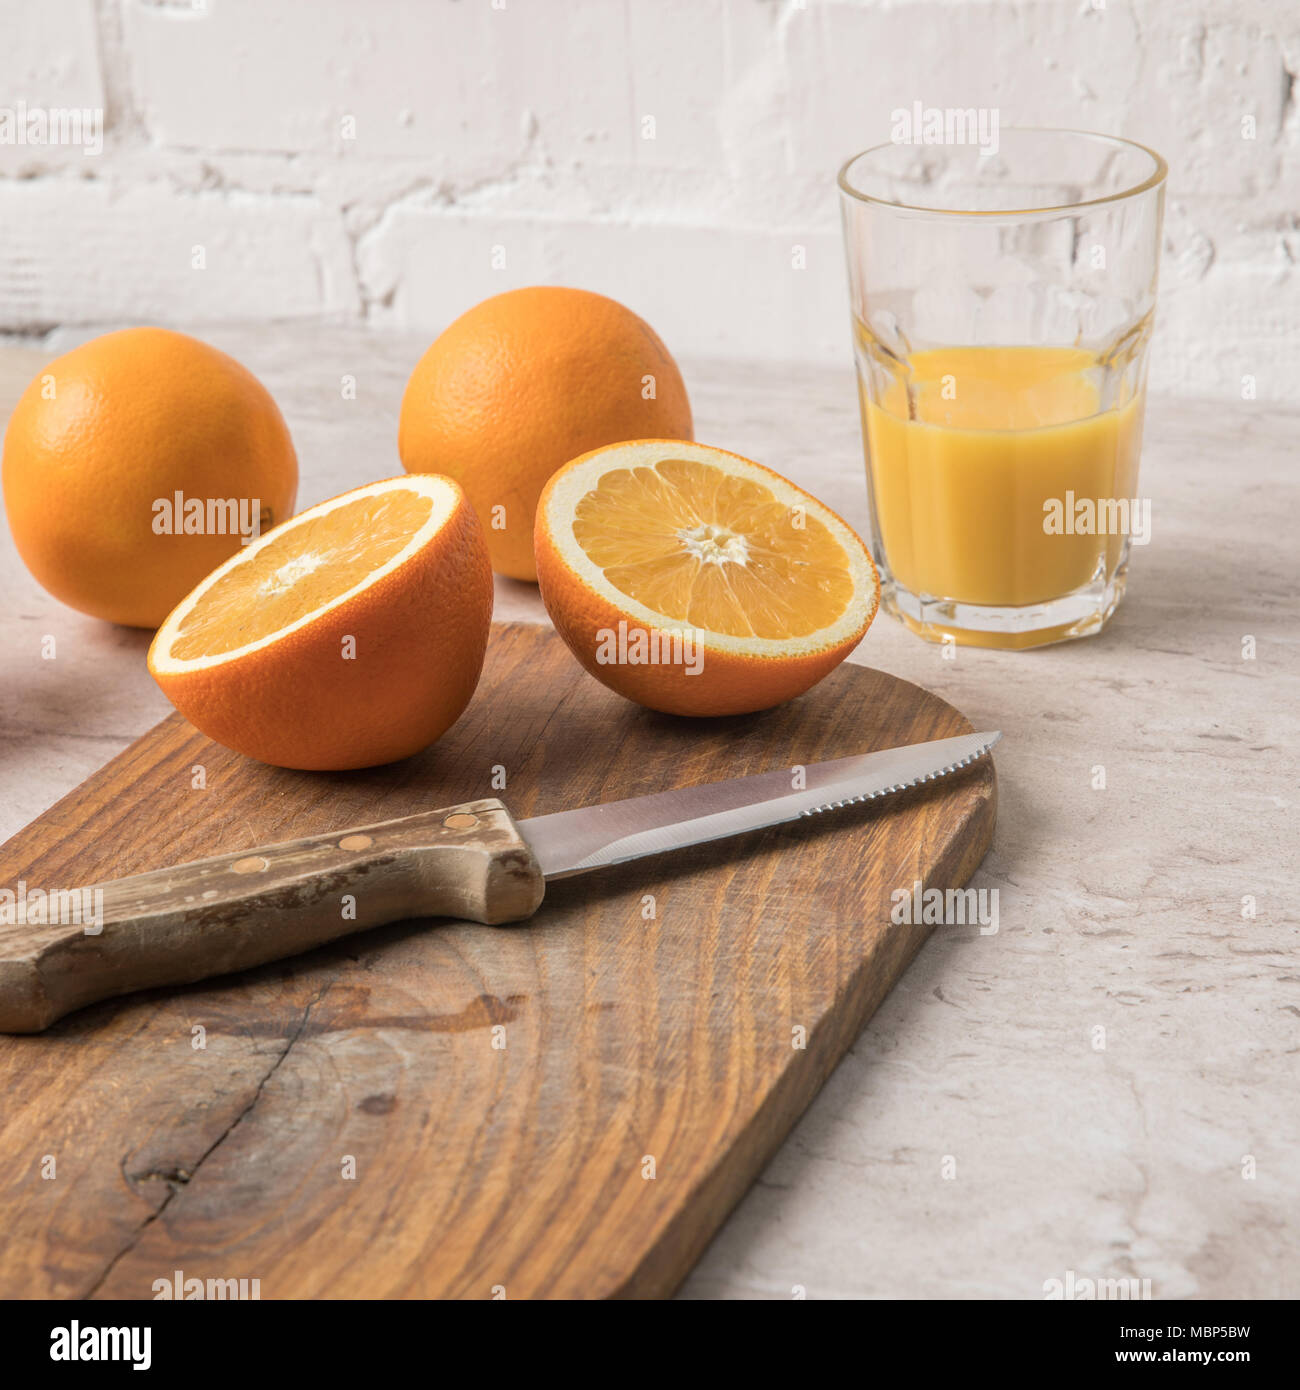 oranges and knife on wooden board on marble table - Stock Image